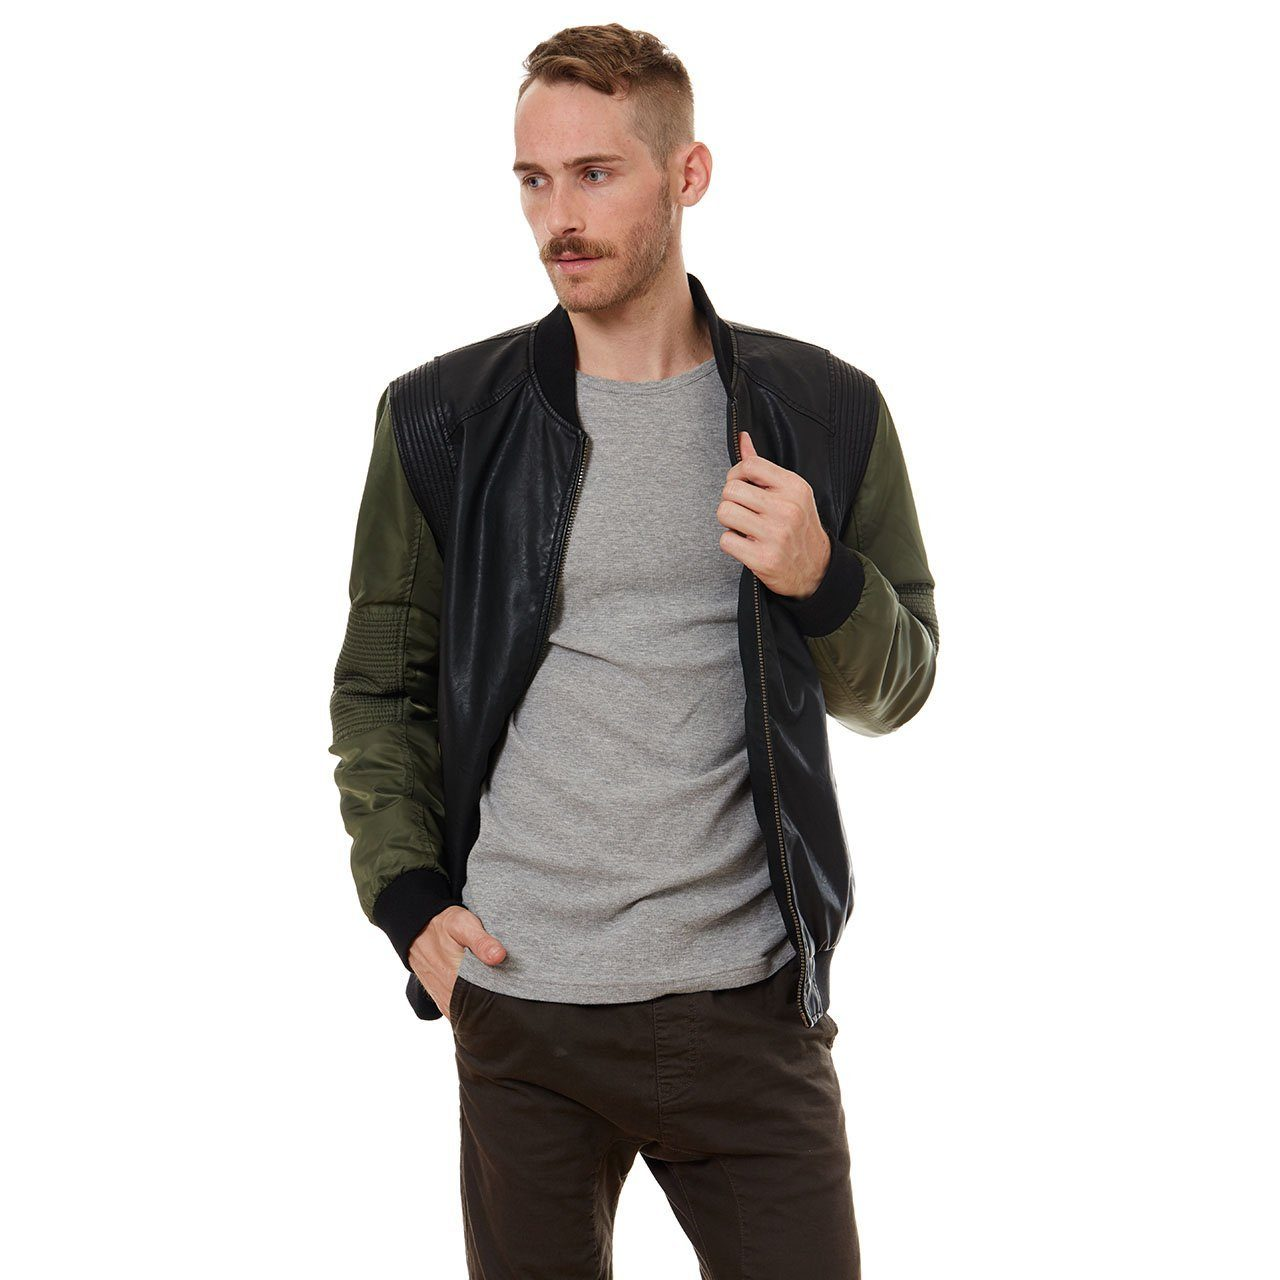 Vegan Leather Jackets - Kenny Vegan Leather Jacket